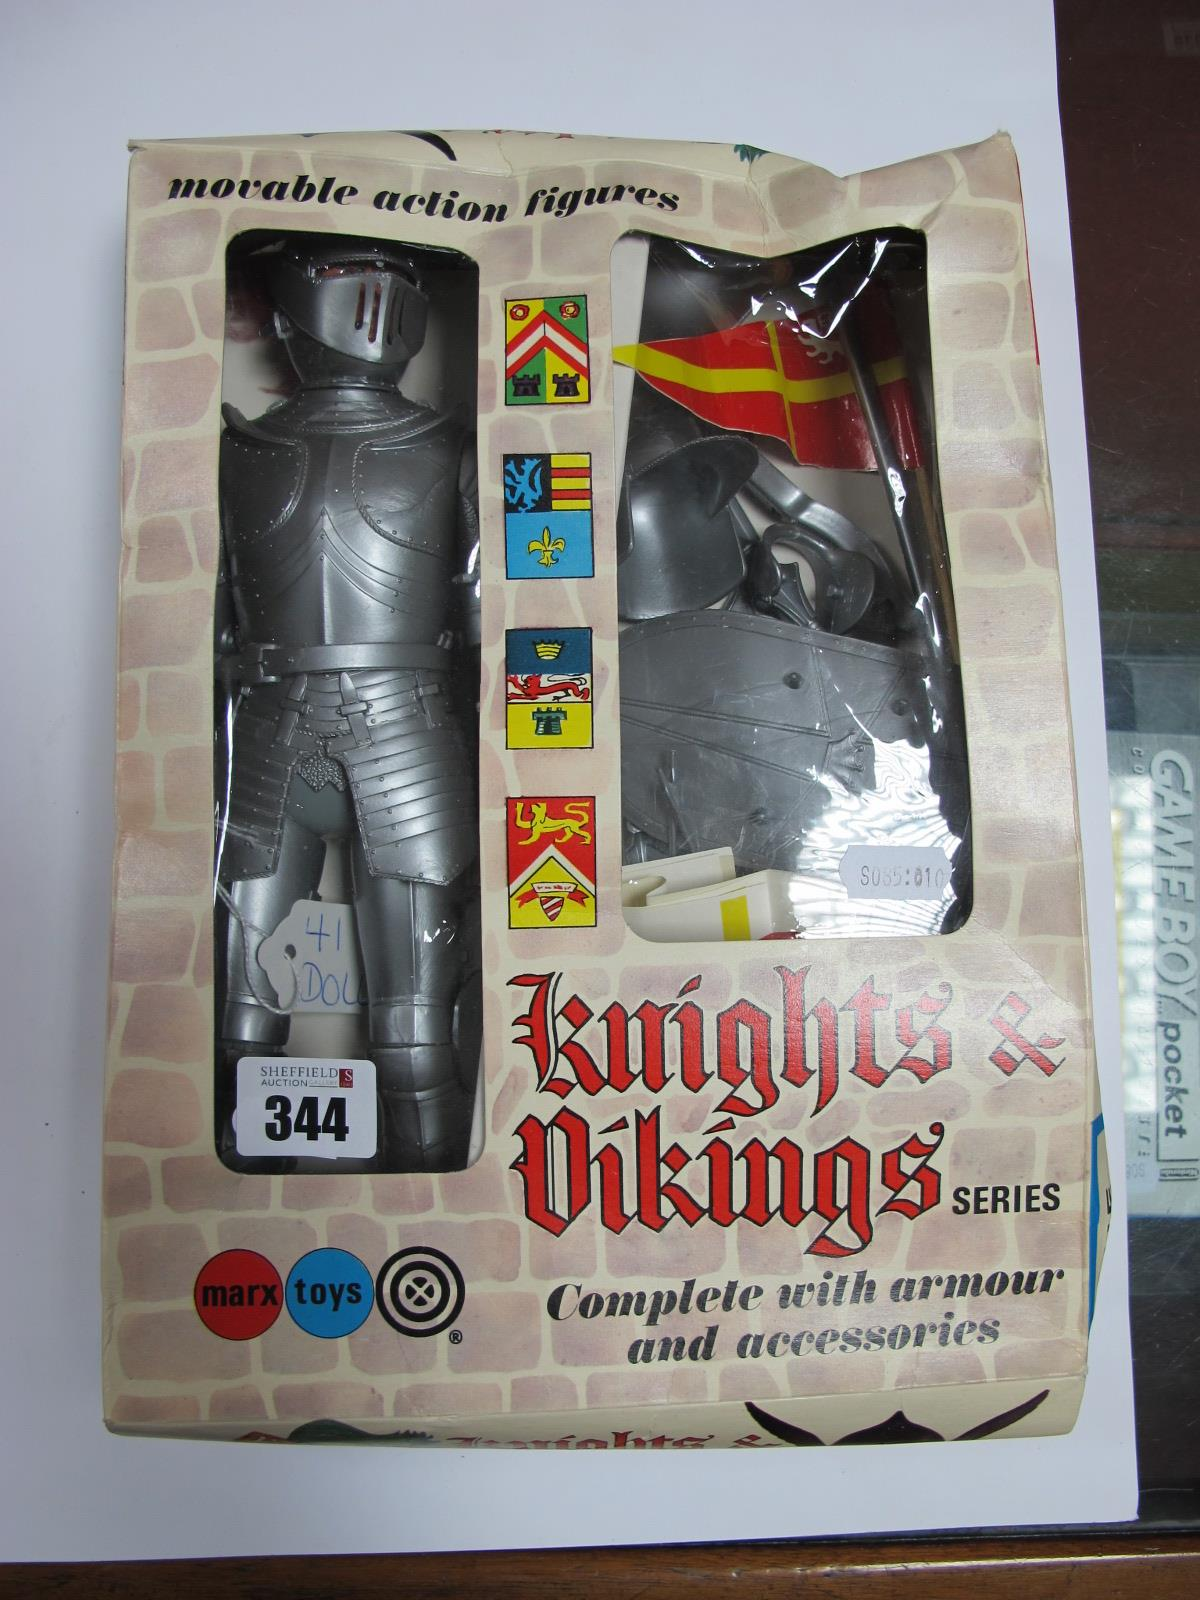 Lot 344 - A 'Sir Roland' Knight Action Figure, by Marx Toys, appears little used with accessories,